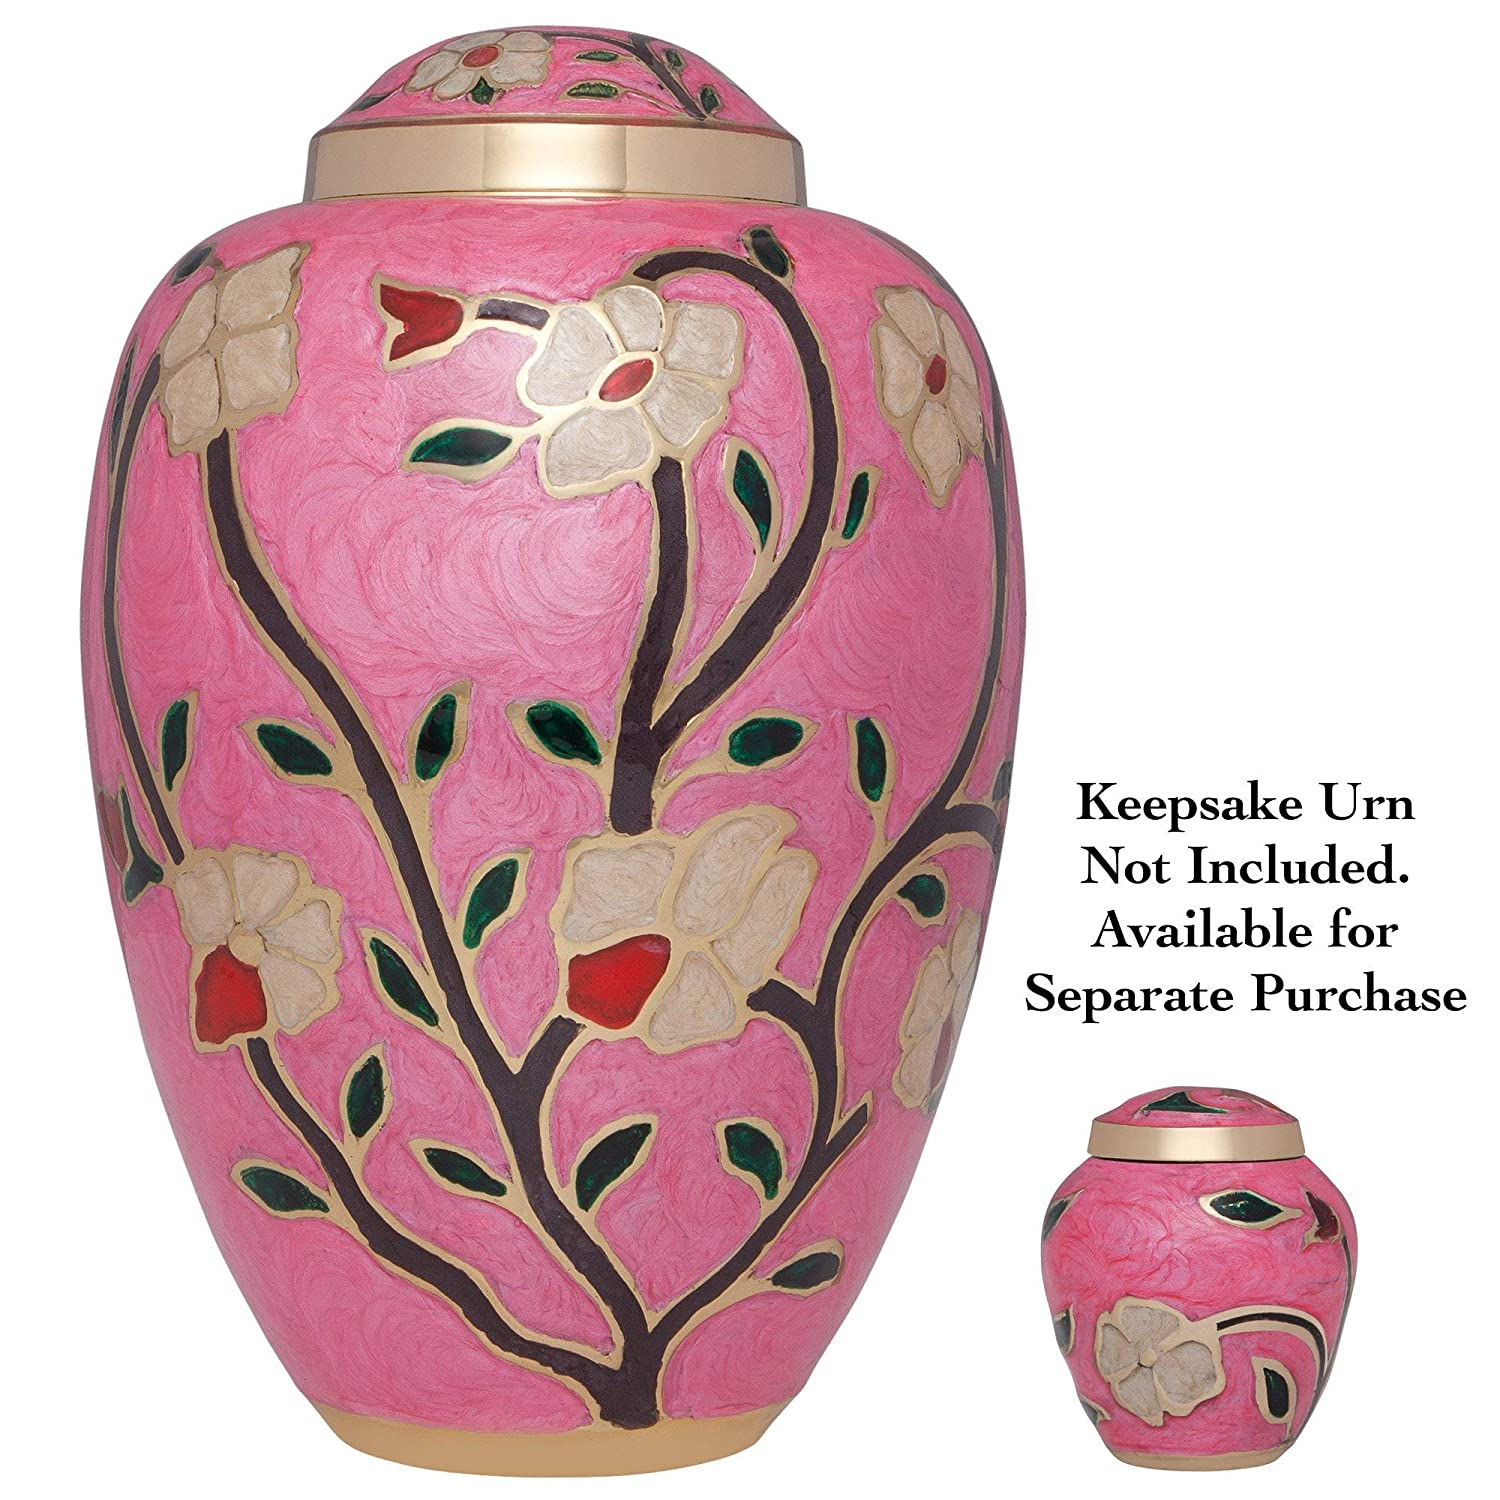 Liliane Memorials Rose Funeral Cremation Urn with enameled Flowers Pink Fleur Model in Brass for Human Ashes Suitable for Cemetery Burial Large Size Fits Remains of Adults up to 200 lbs Fleur/_Pink/_L